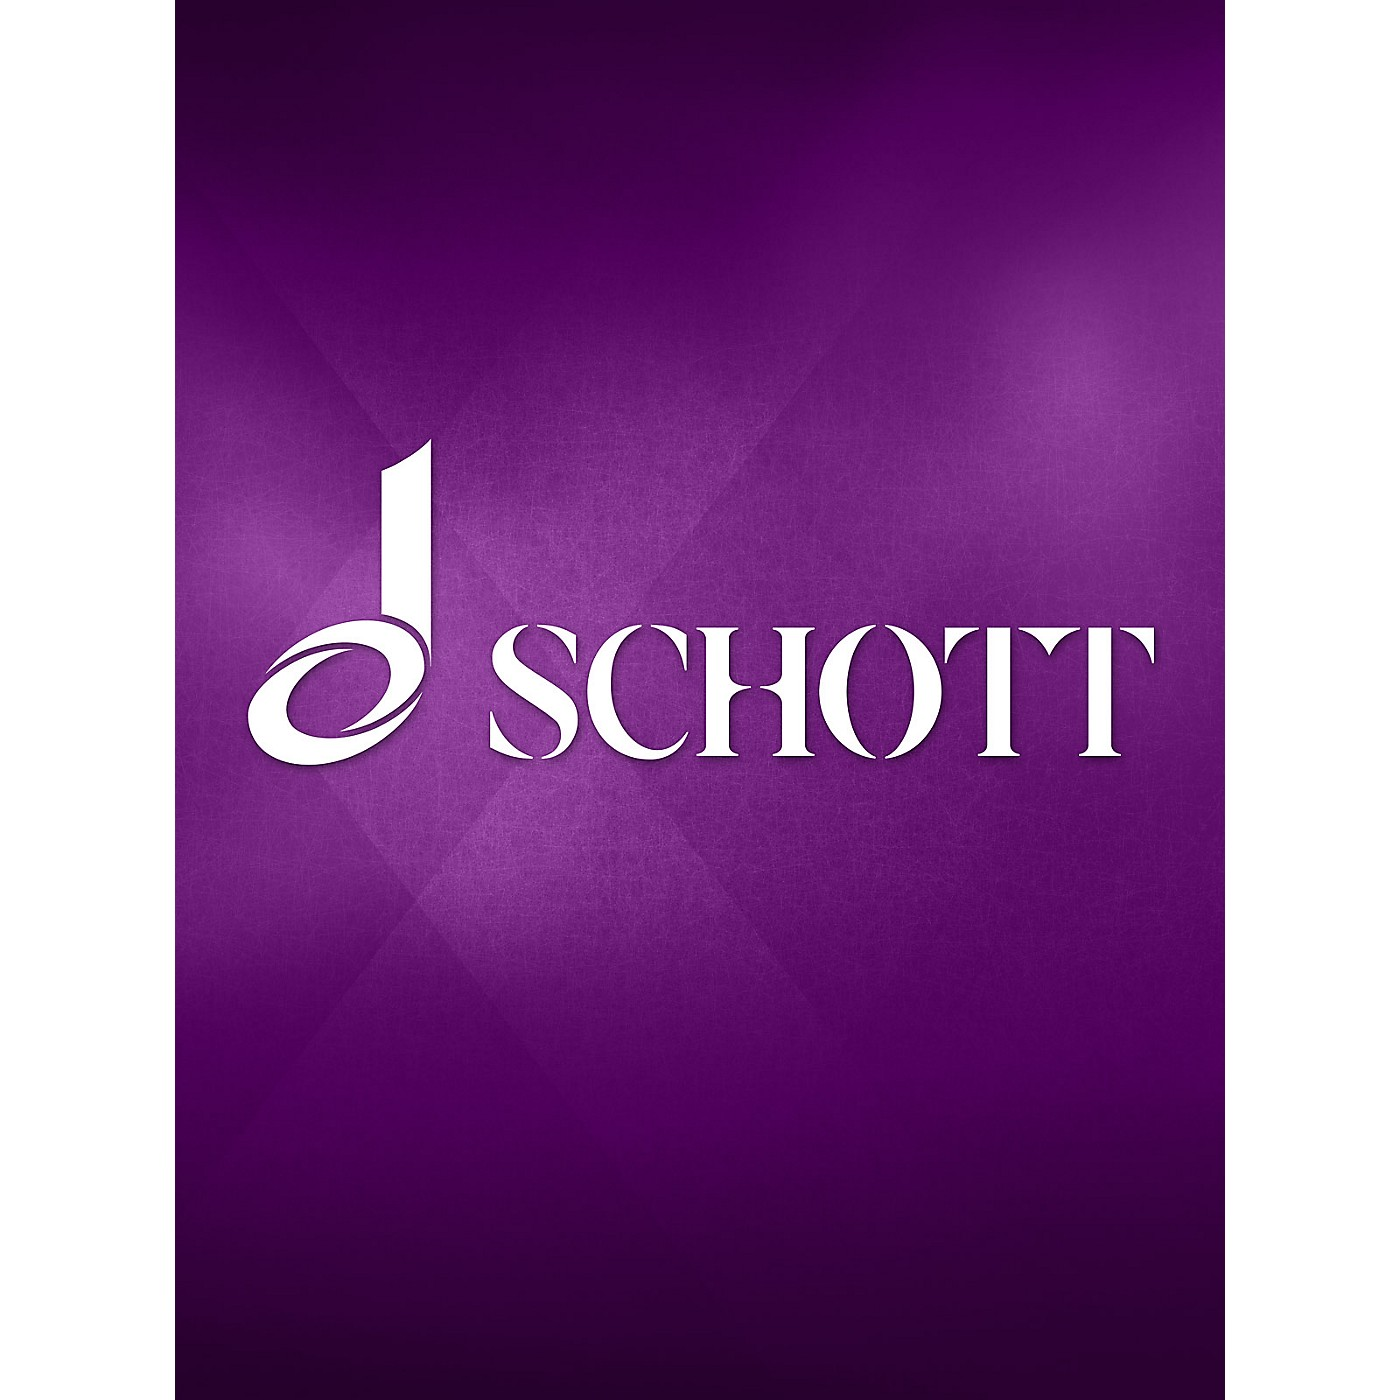 Schott Music 12 Trio Sonatas Op. 2, Nos. 7-9 (Score and Parts) Schott Series Composed by Arcangelo Corelli thumbnail